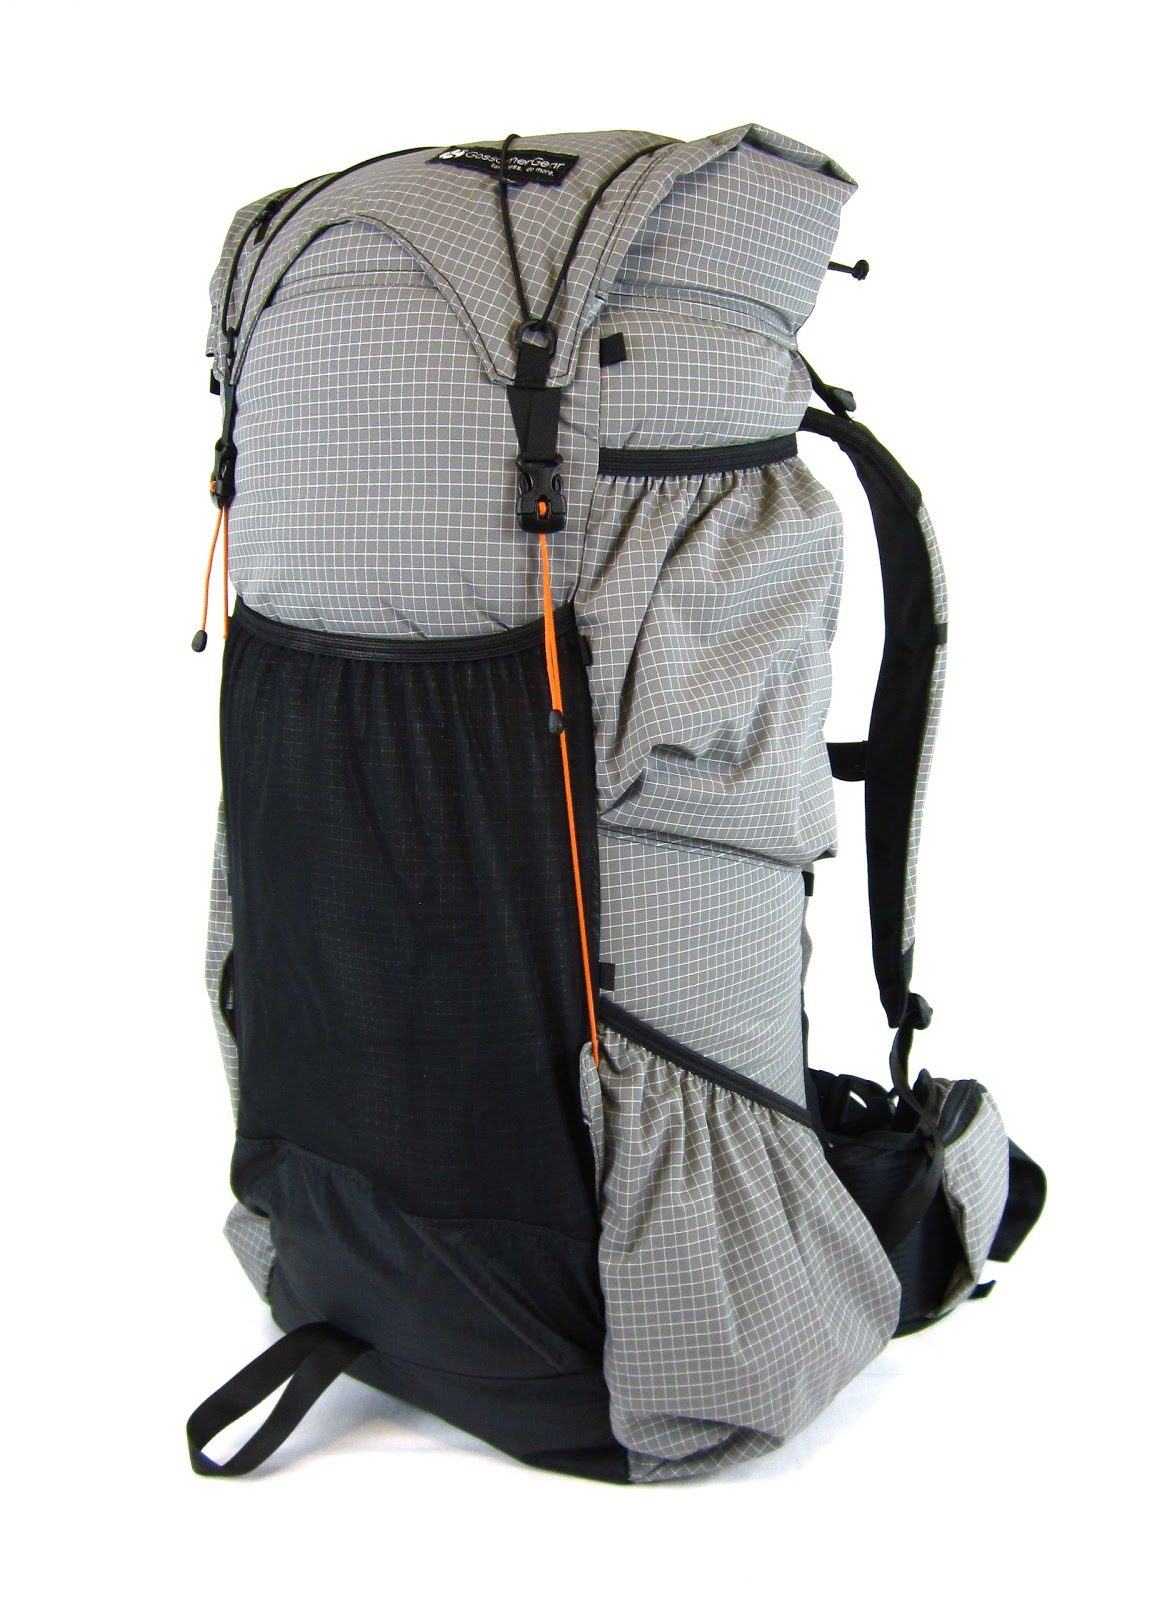 The Ultralight Backpack